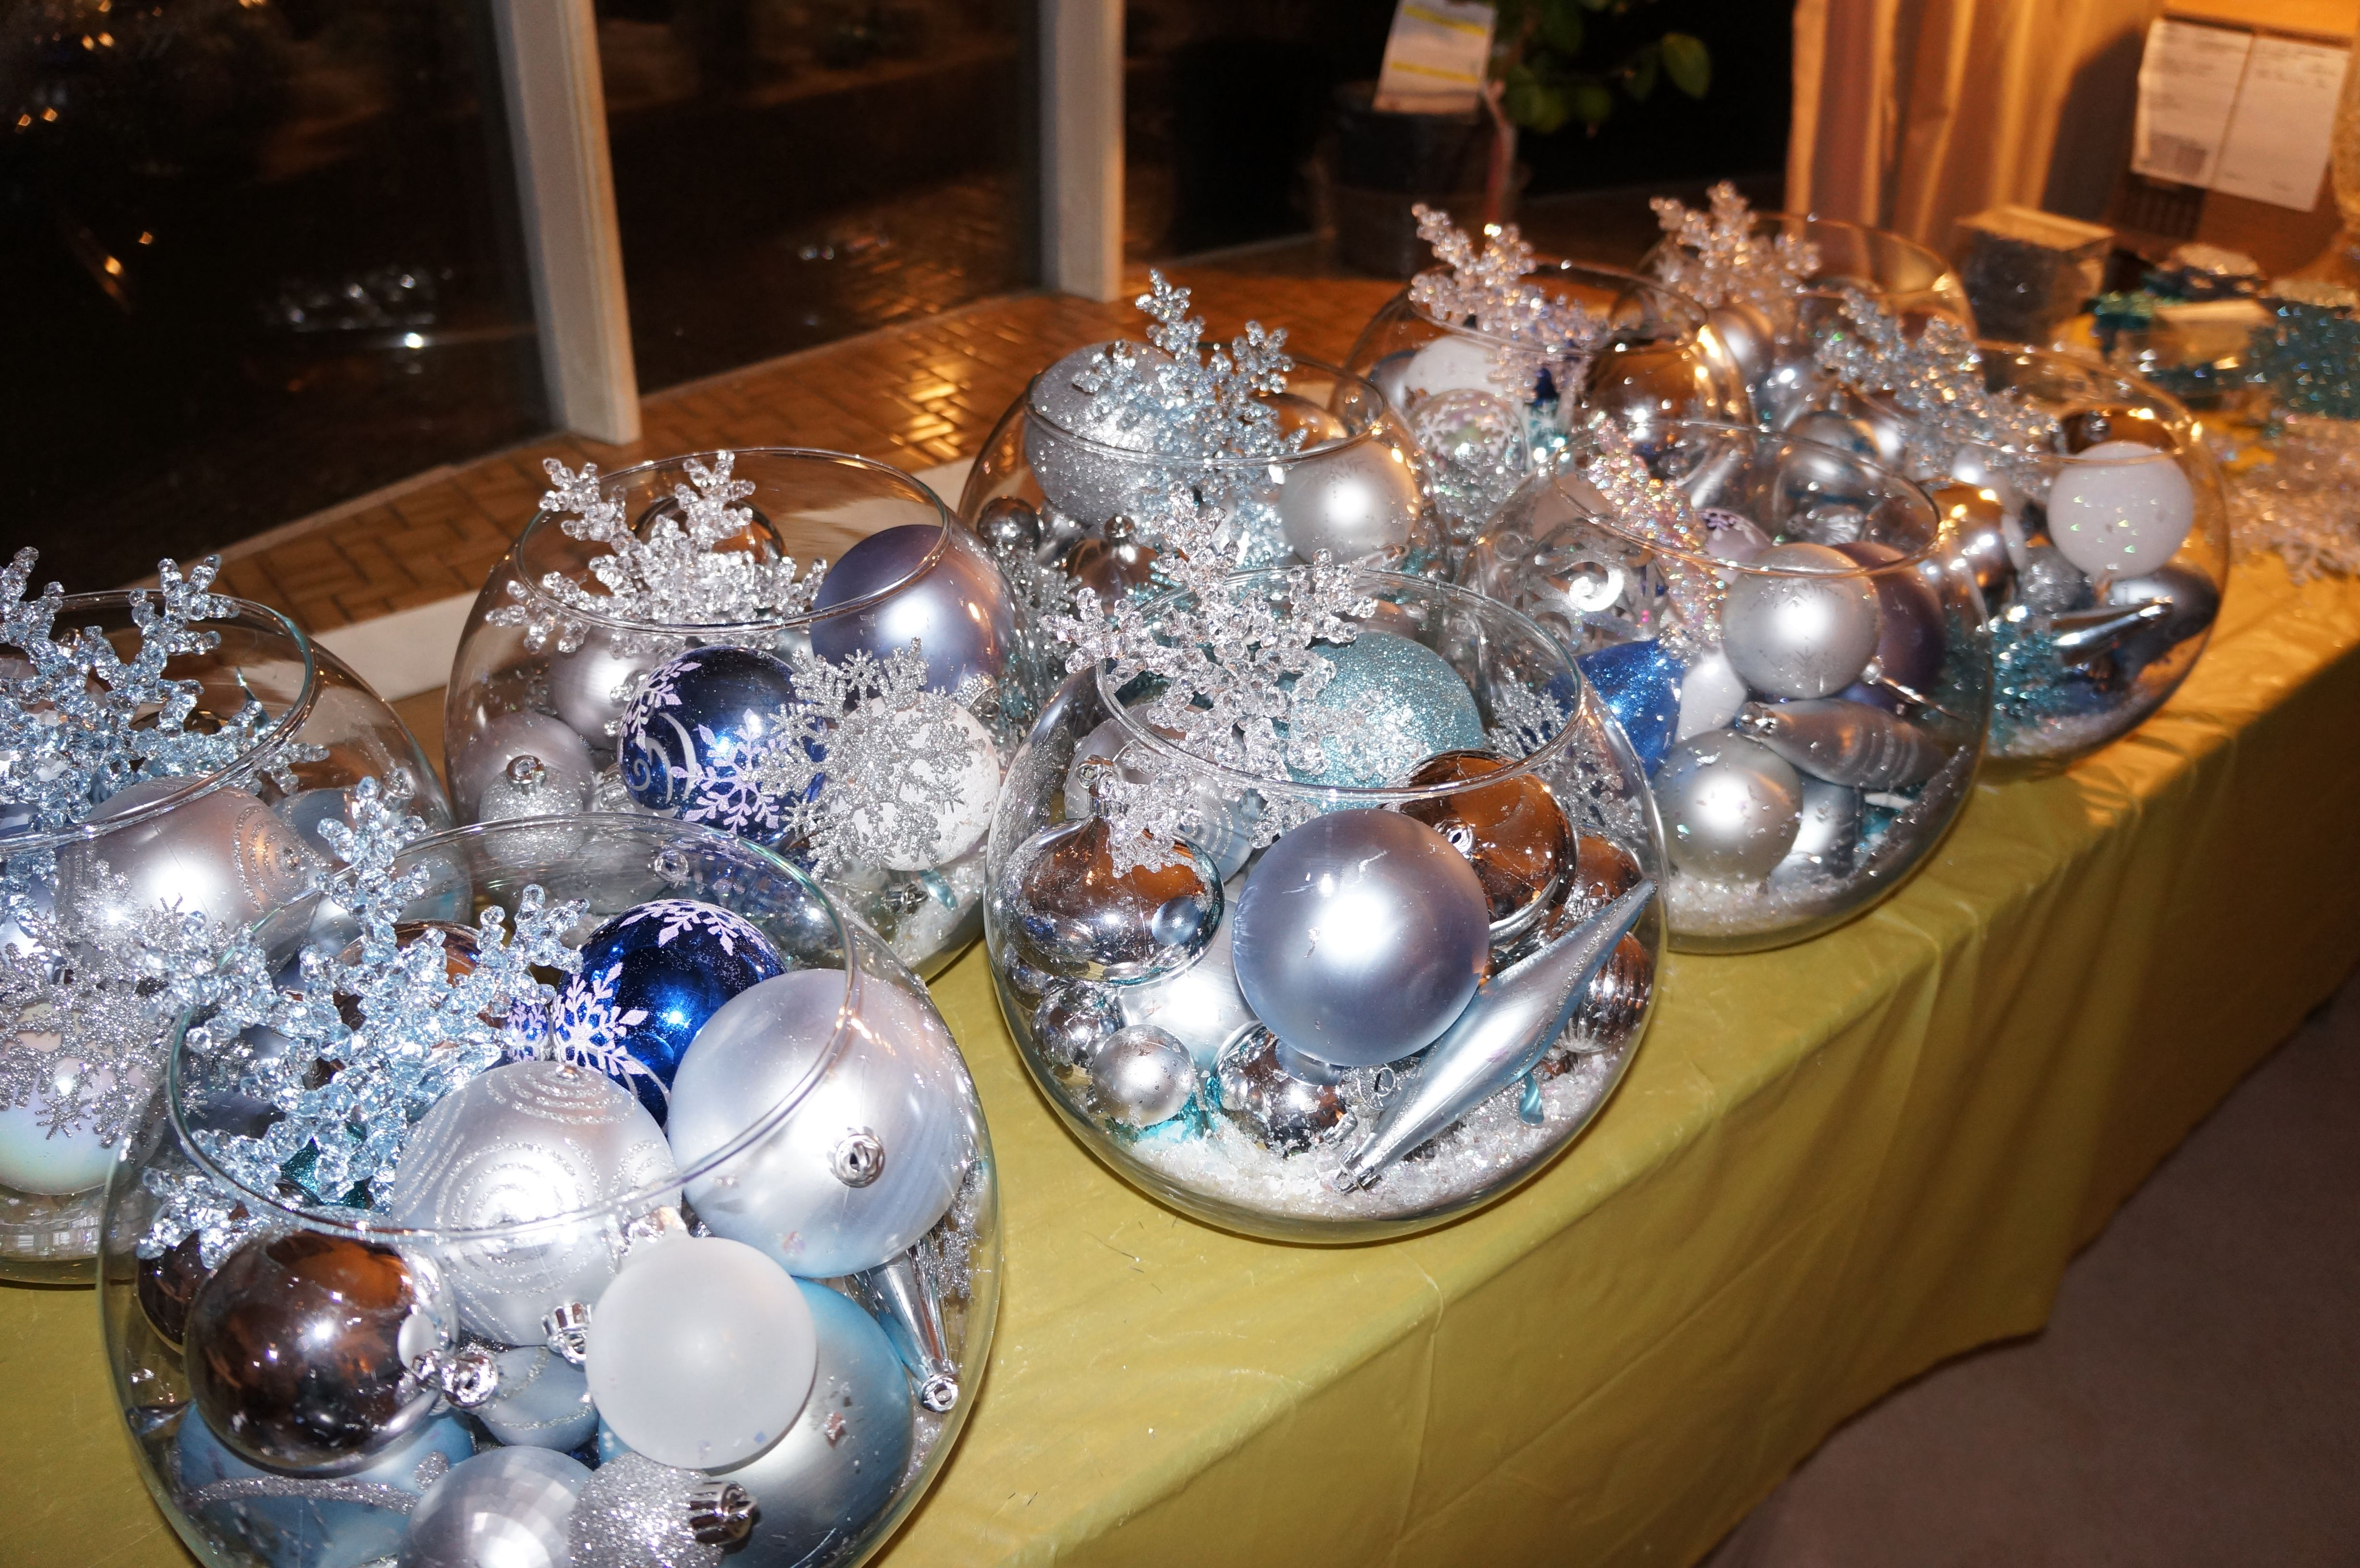 Winter Wedding Centerpieces- Bowls Of Ornaments Topped